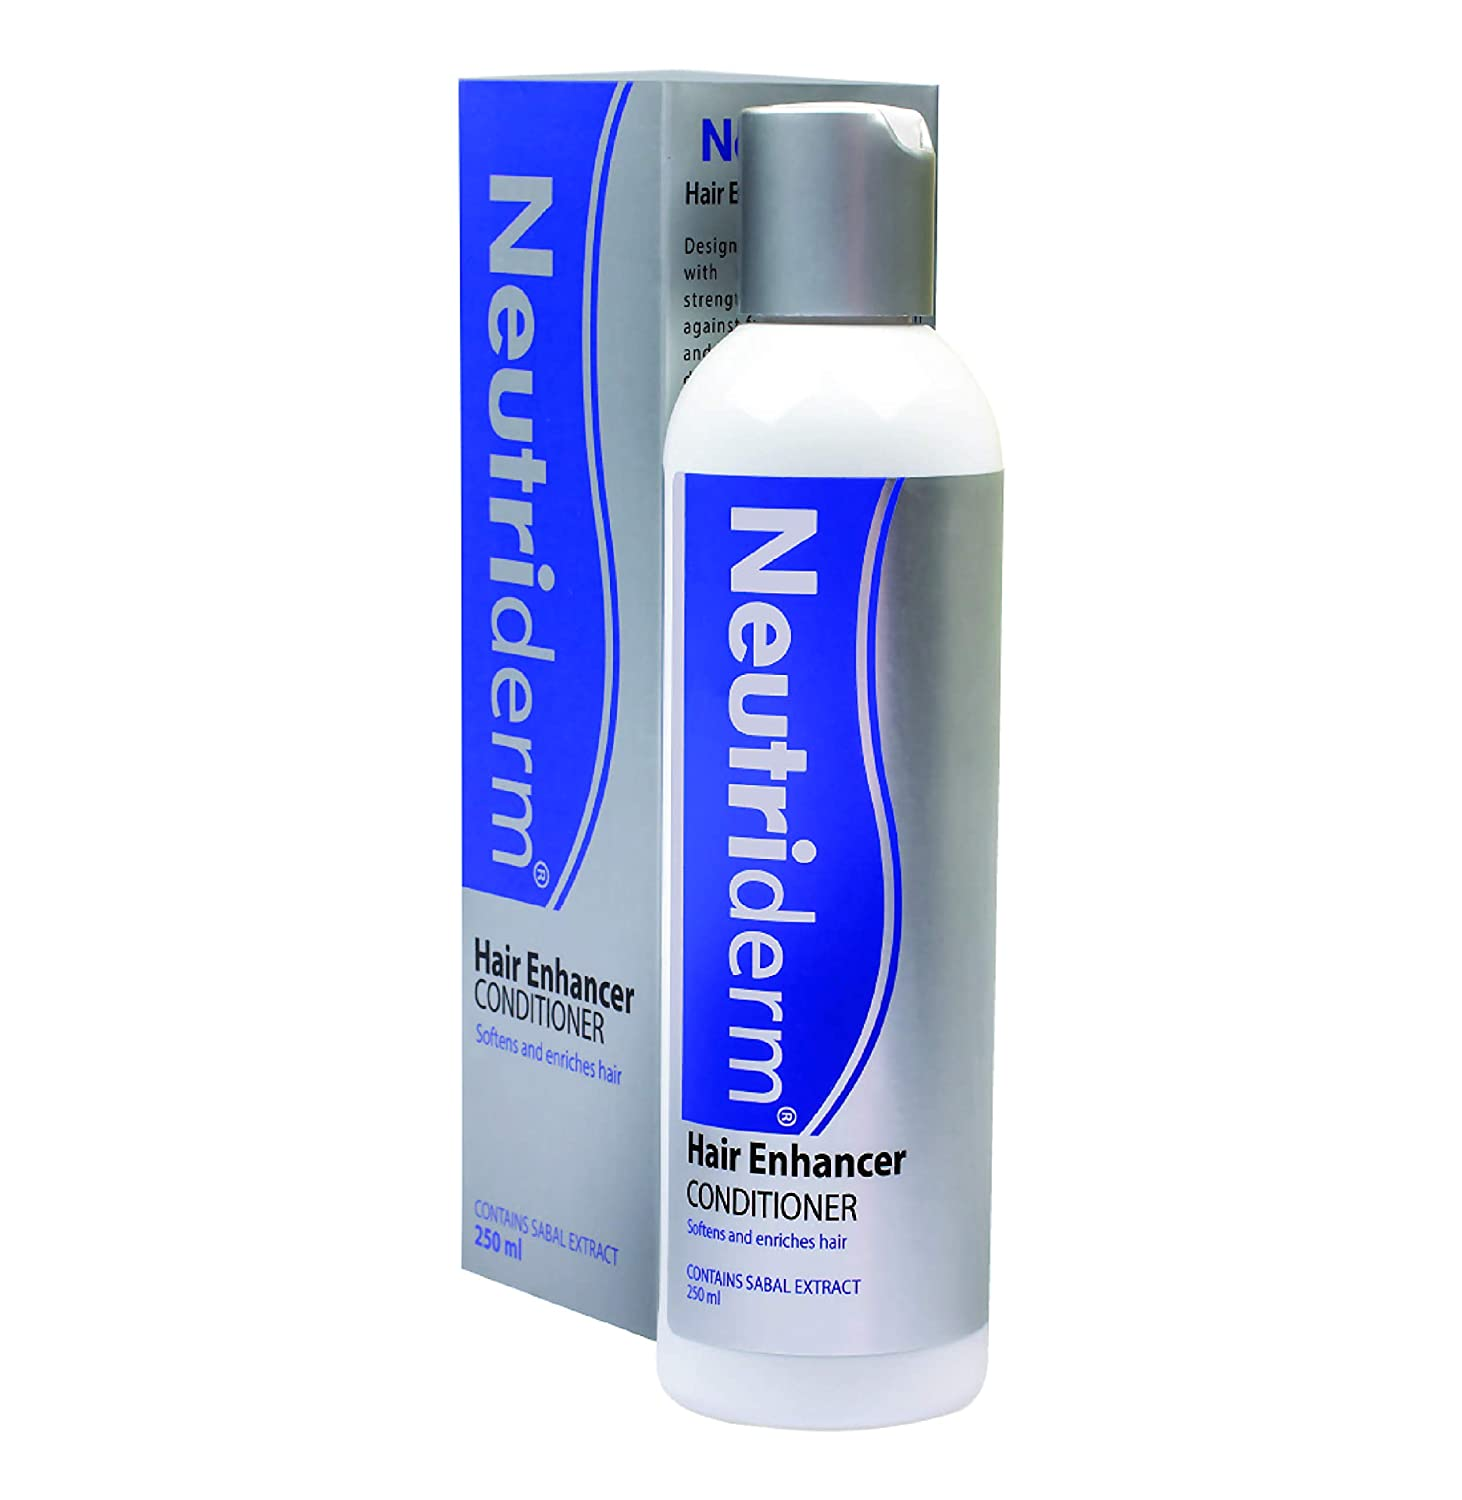 Neutriderm Hair Enhancer Conditioner - 250 mL UAS Pharmaceuticals